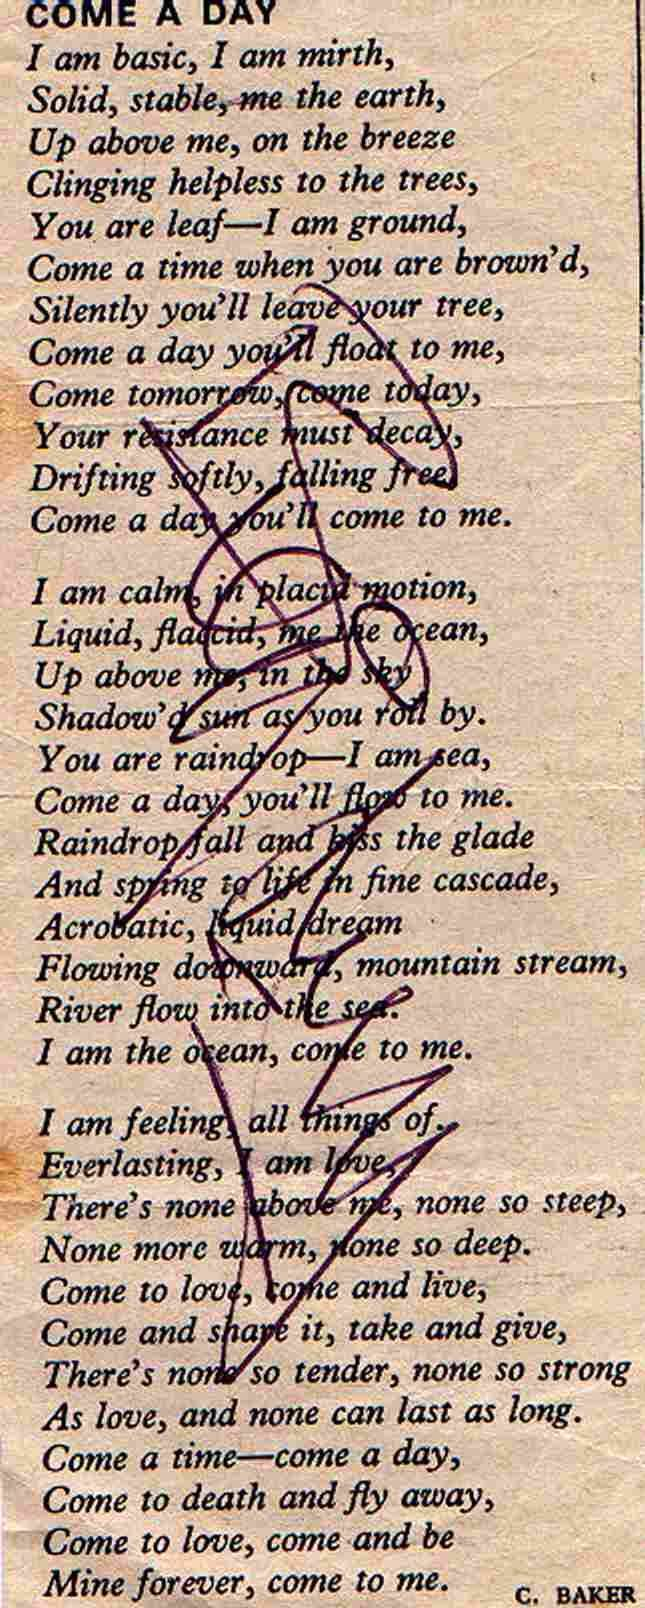 Billy's signature on a poem - from Barbara Hughes who posted it on to BILLY FURY SONGS on Facebook - 14th August, 2014